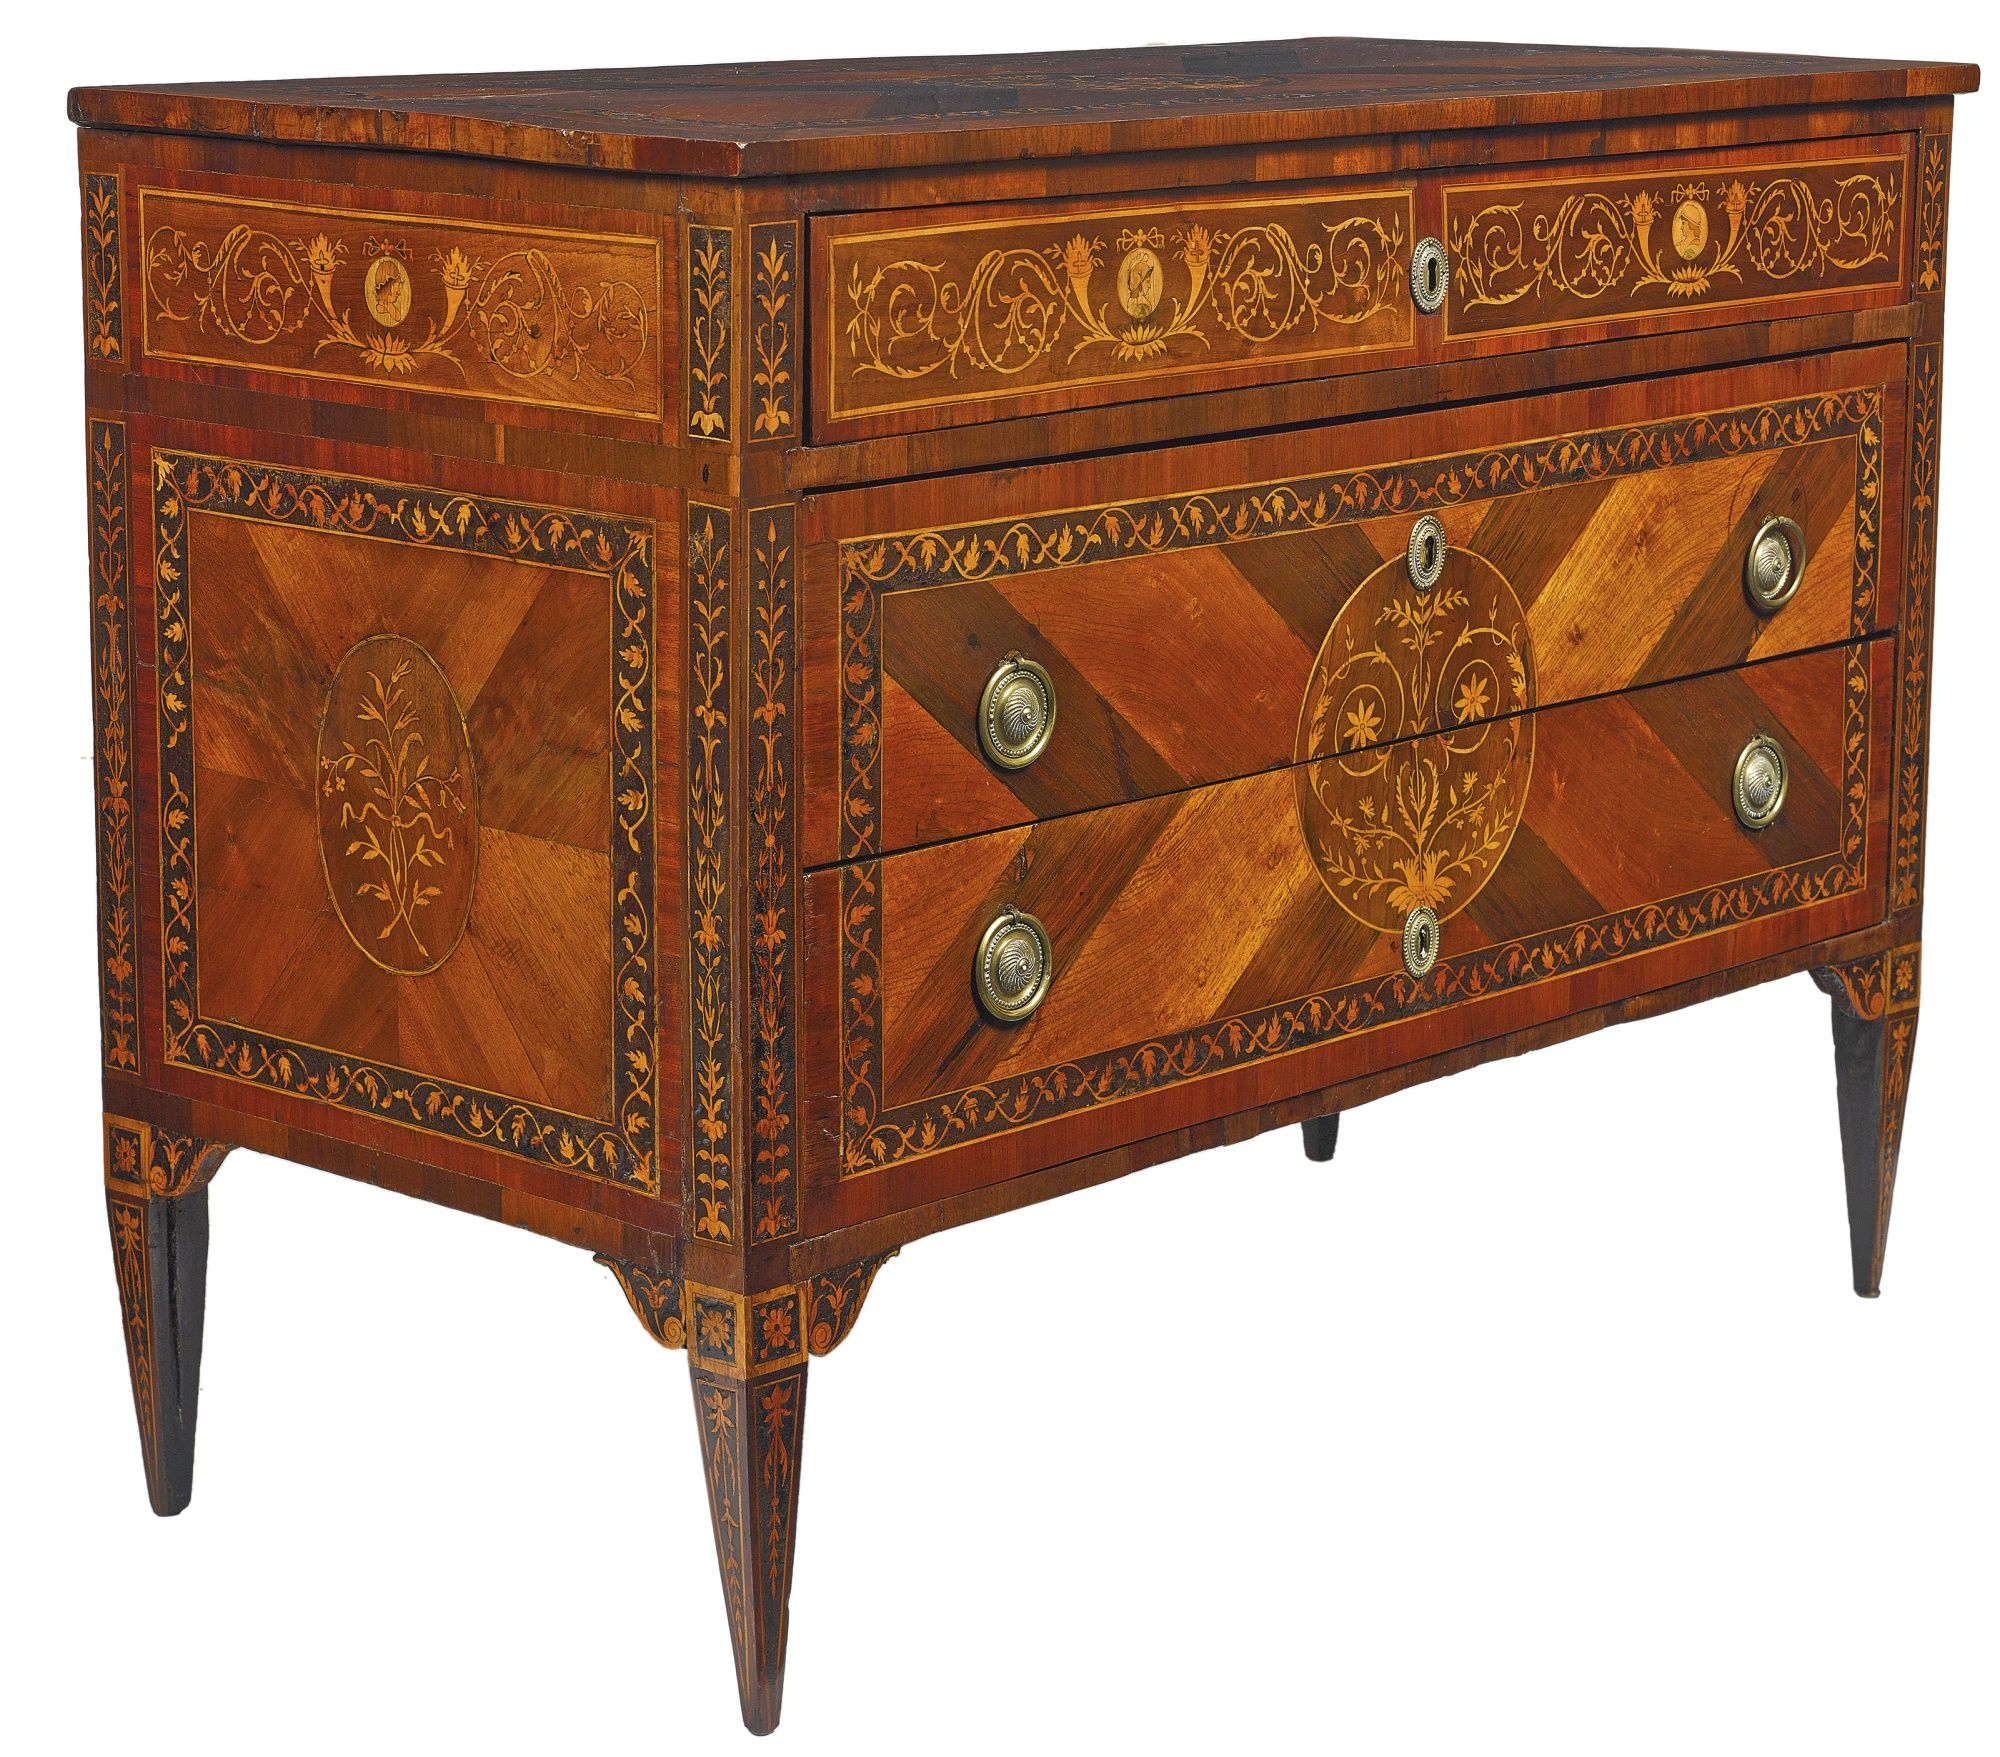 Muebles Italianos Clasicos A Pair Of Italian Neoclassical Rosewood Walnut Marquetry